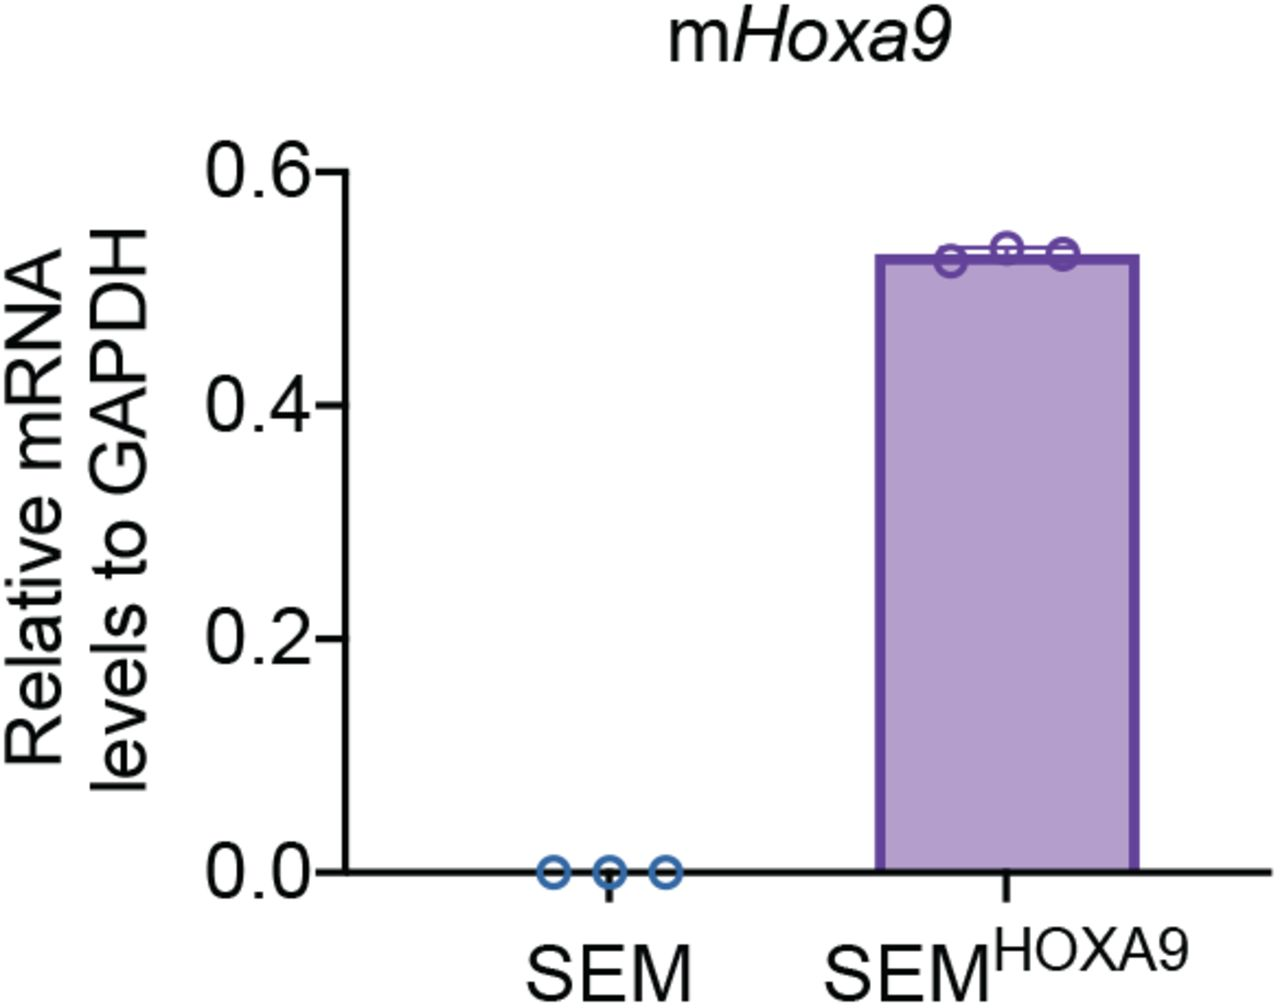 Validation of ectopic overexpression of HOXA9. A retroviral mouse Hoxa9 expression cassette was infected into SEM cells followed by quantification of Q-PCR using specific primers against mouse Hoxa9 coding sequence. Data are means ± SEM from two independent experiments.